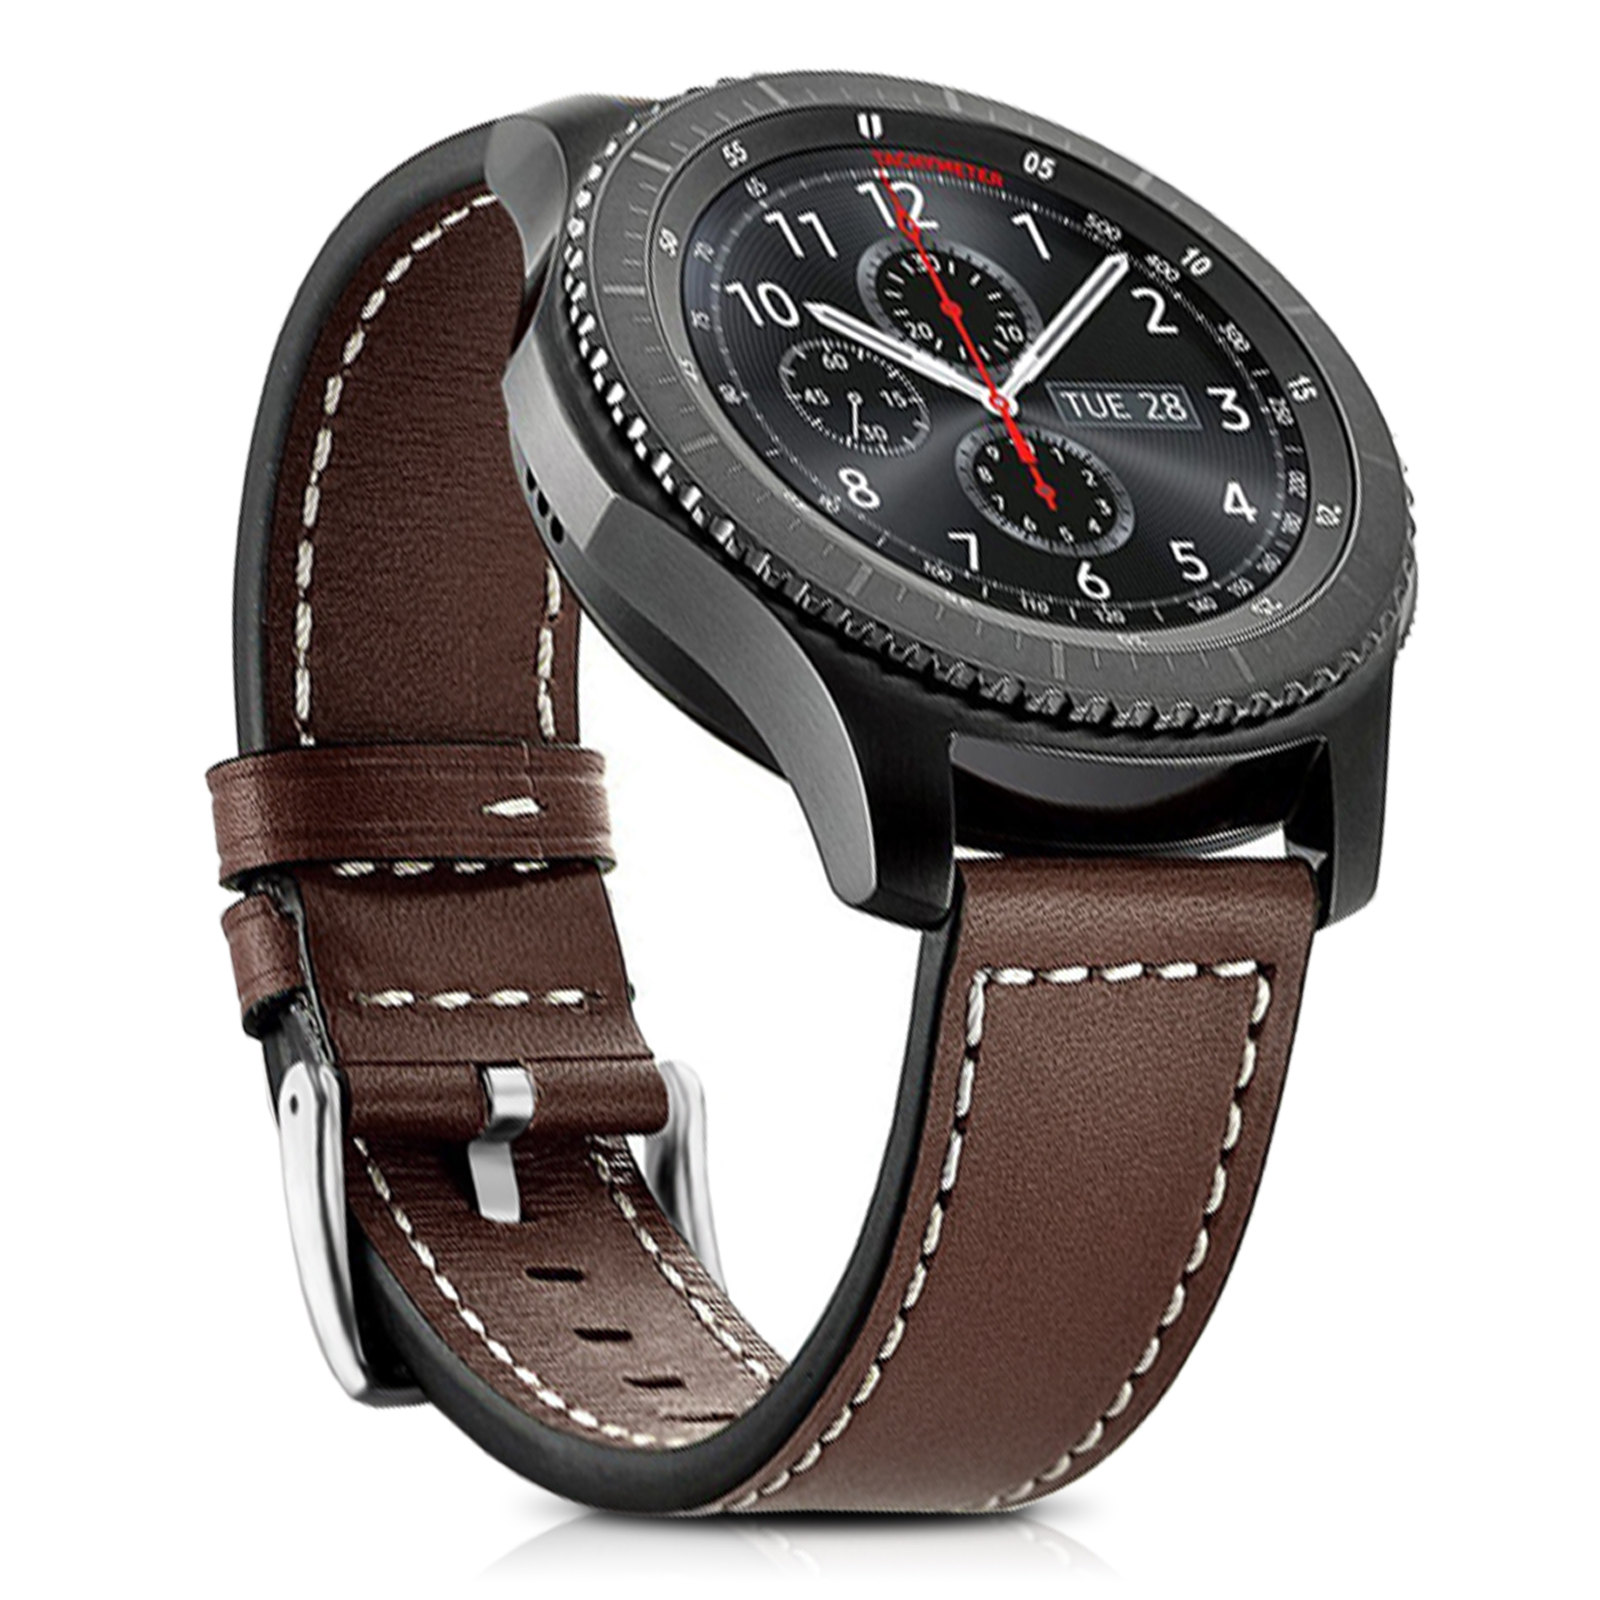 TSV Genuine Leather Watch Band, 22mm Genuine Leather Band with Buckle Strap Replacement Wristband for Samsung Gear S3 Frontier / Classic Smart Watch